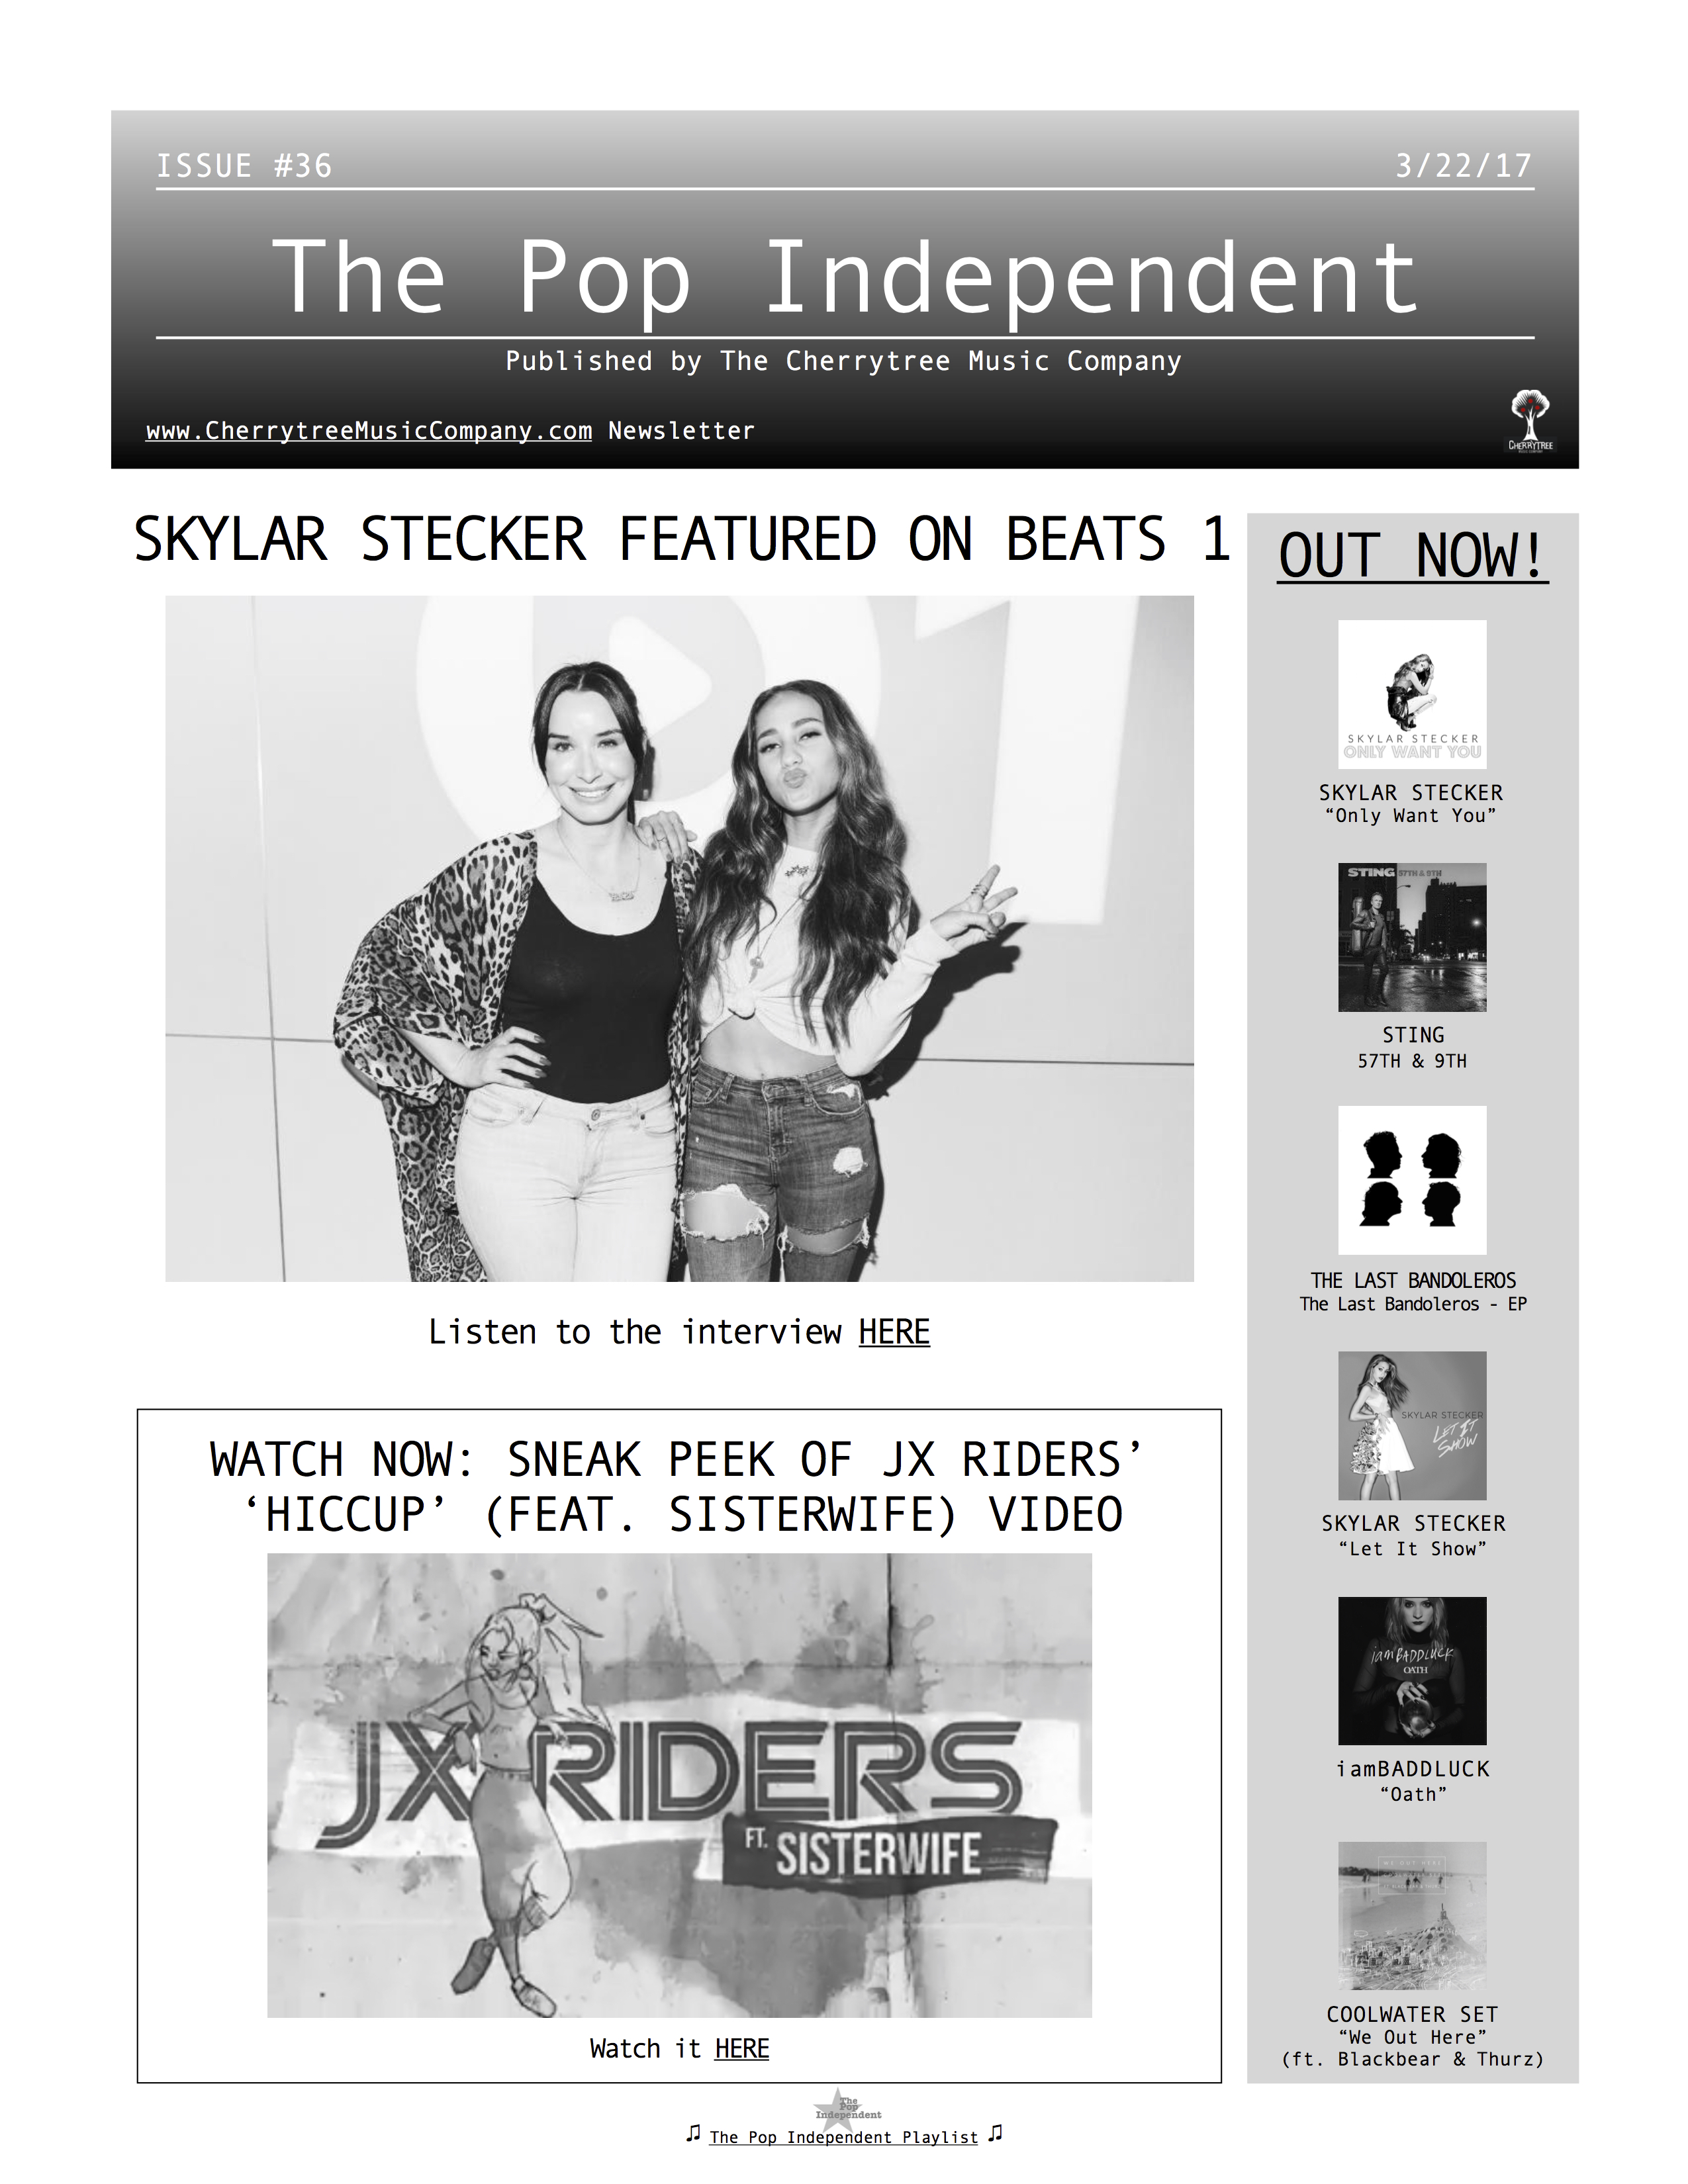 The Pop Independent, issue 36